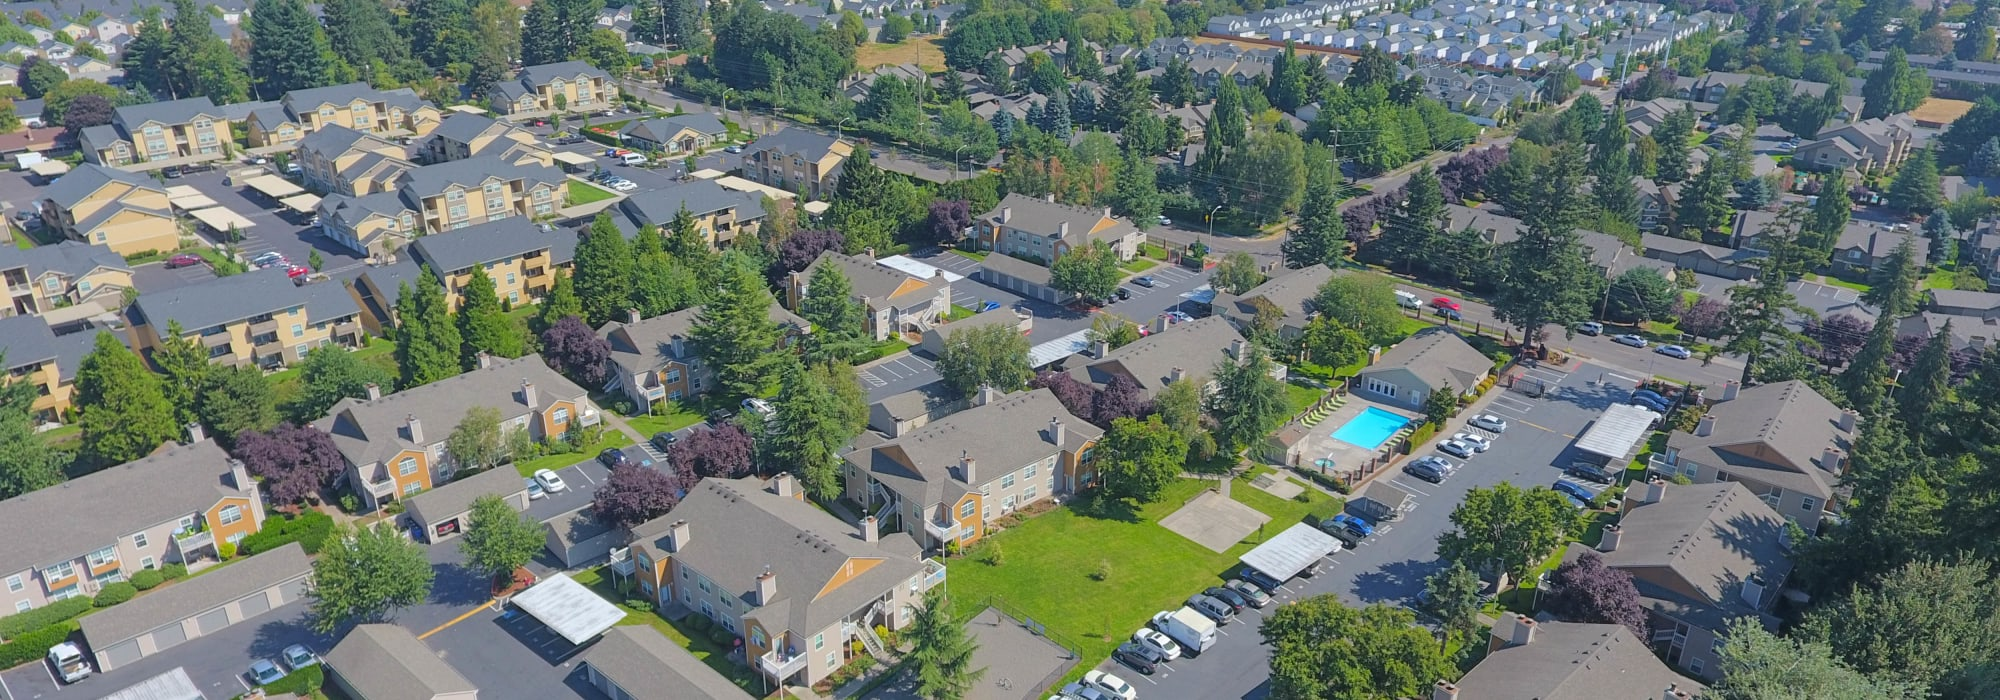 Map and directions to Carriage Park Apartments in Vancouver, Washington